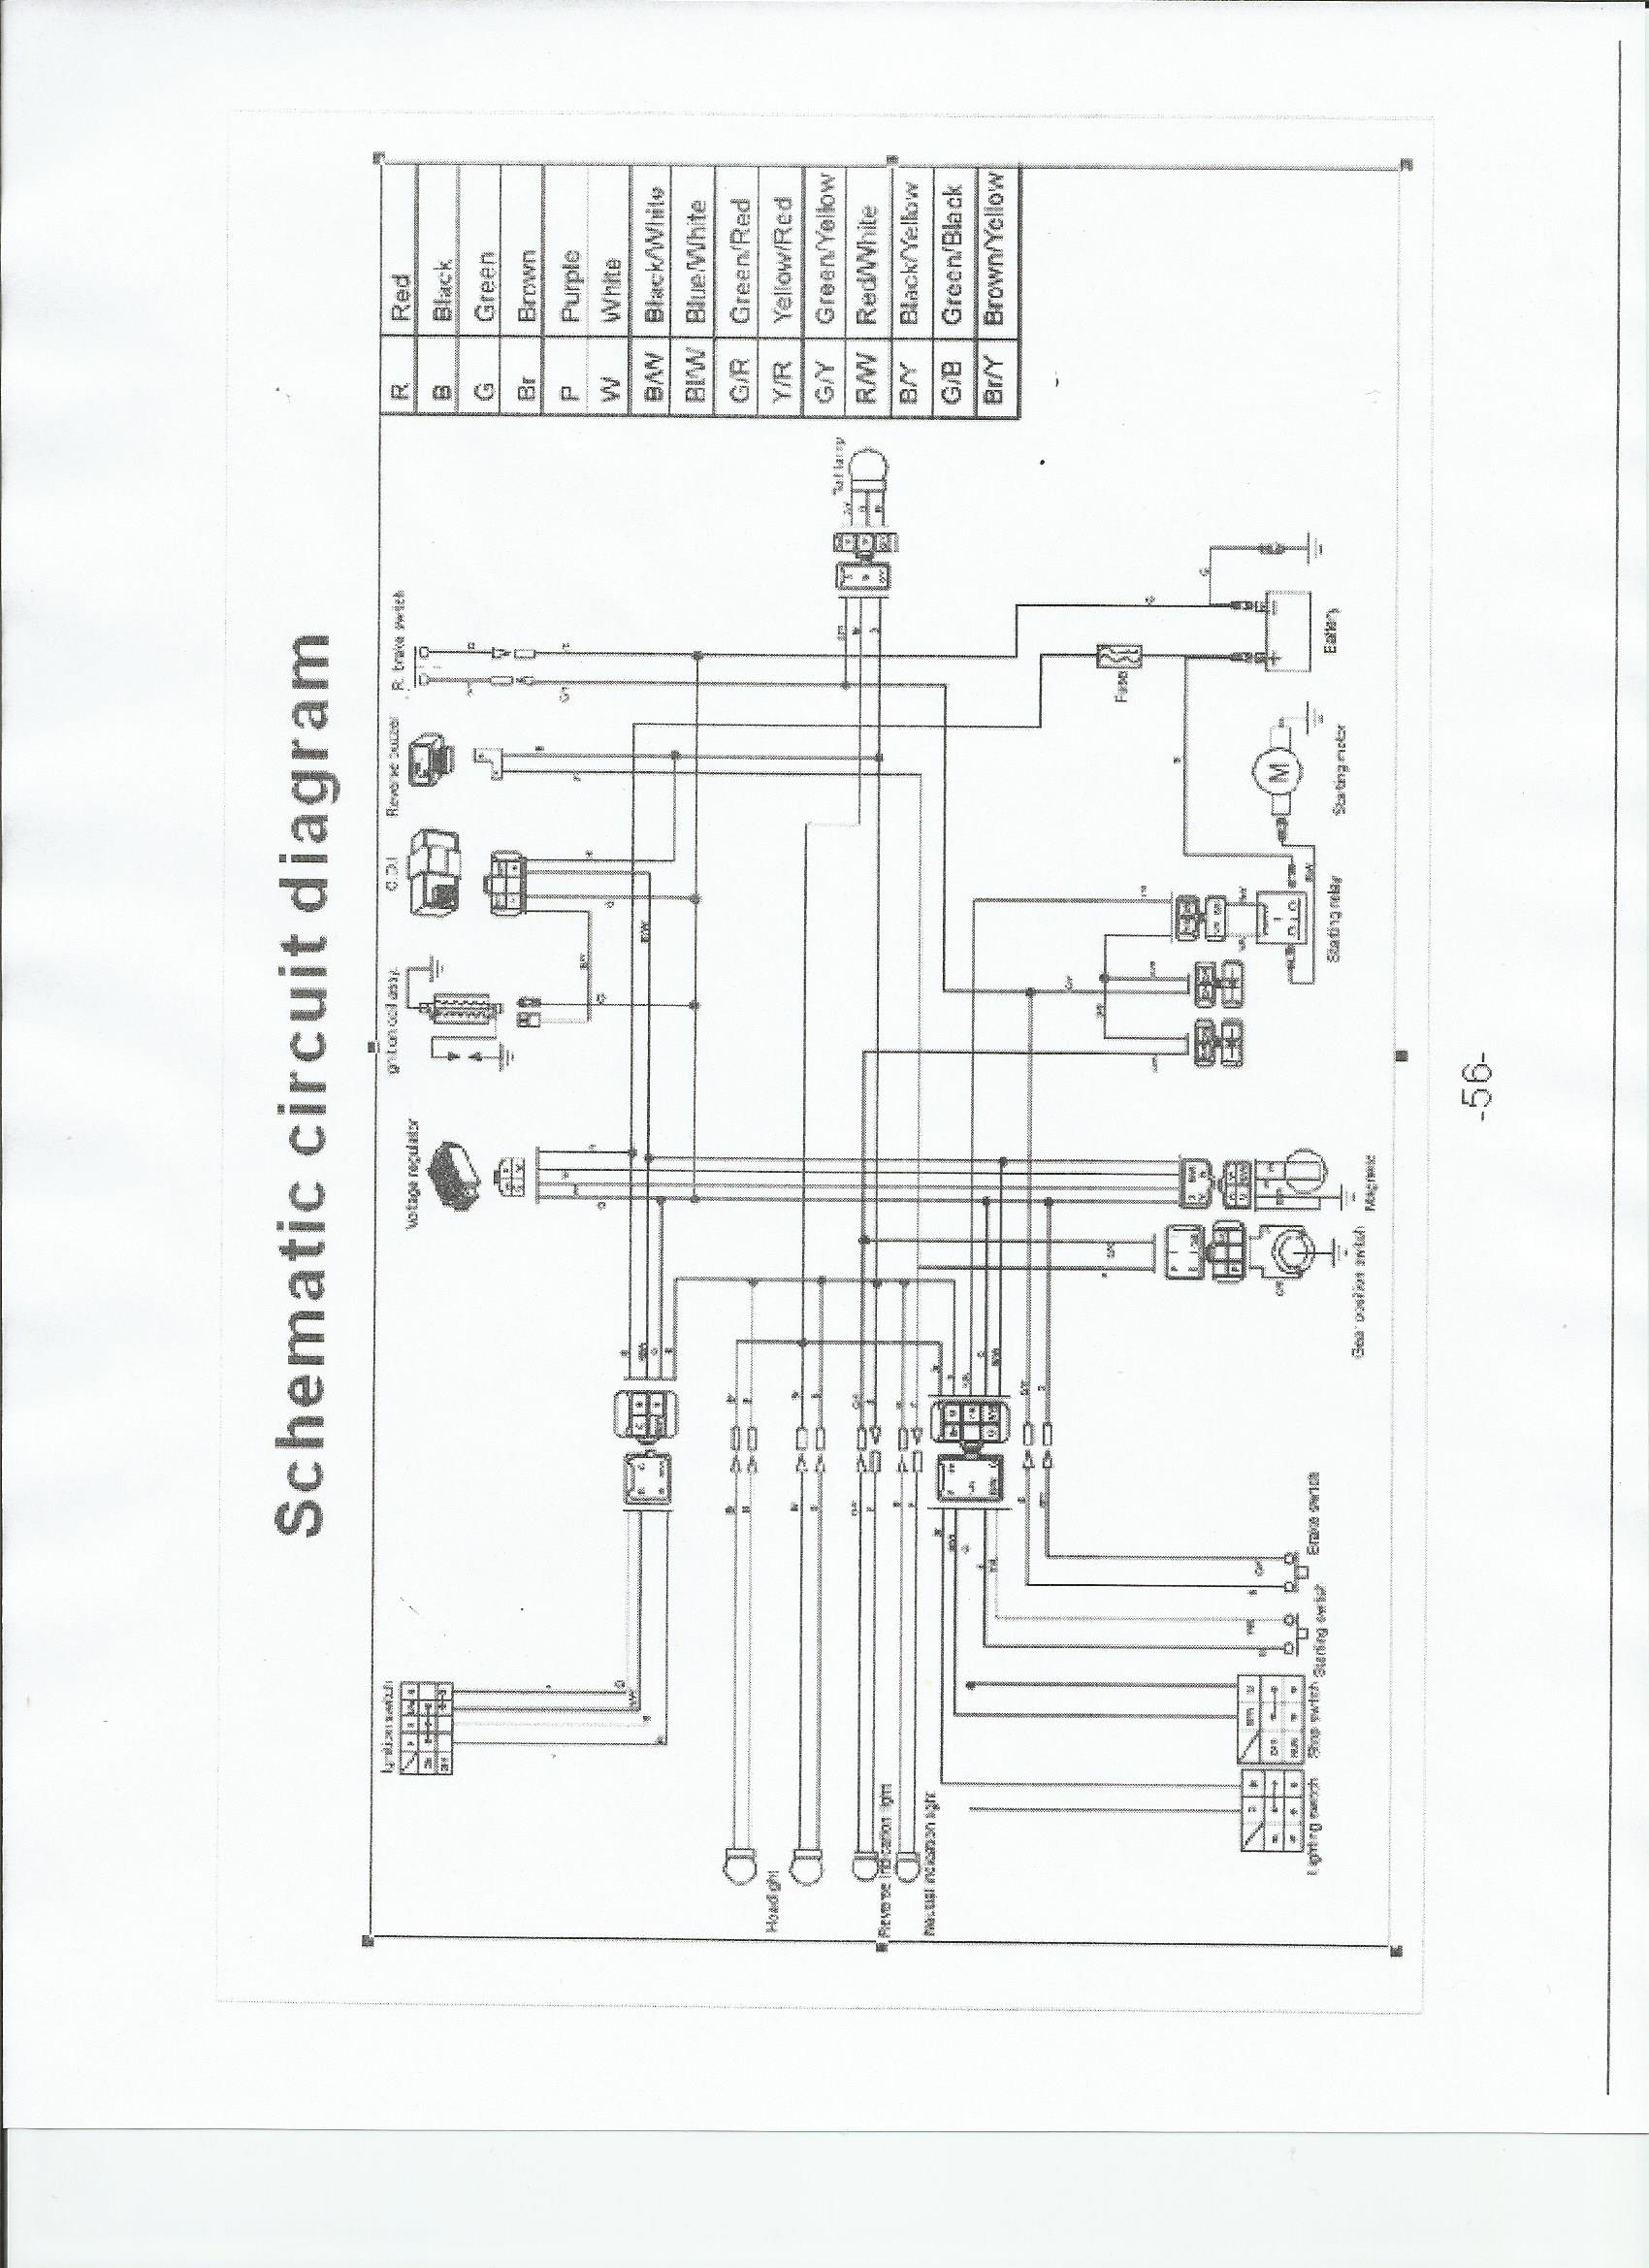 49cc mini chopper wiring diagram horizontal electric start engine tao tao wiring schematic